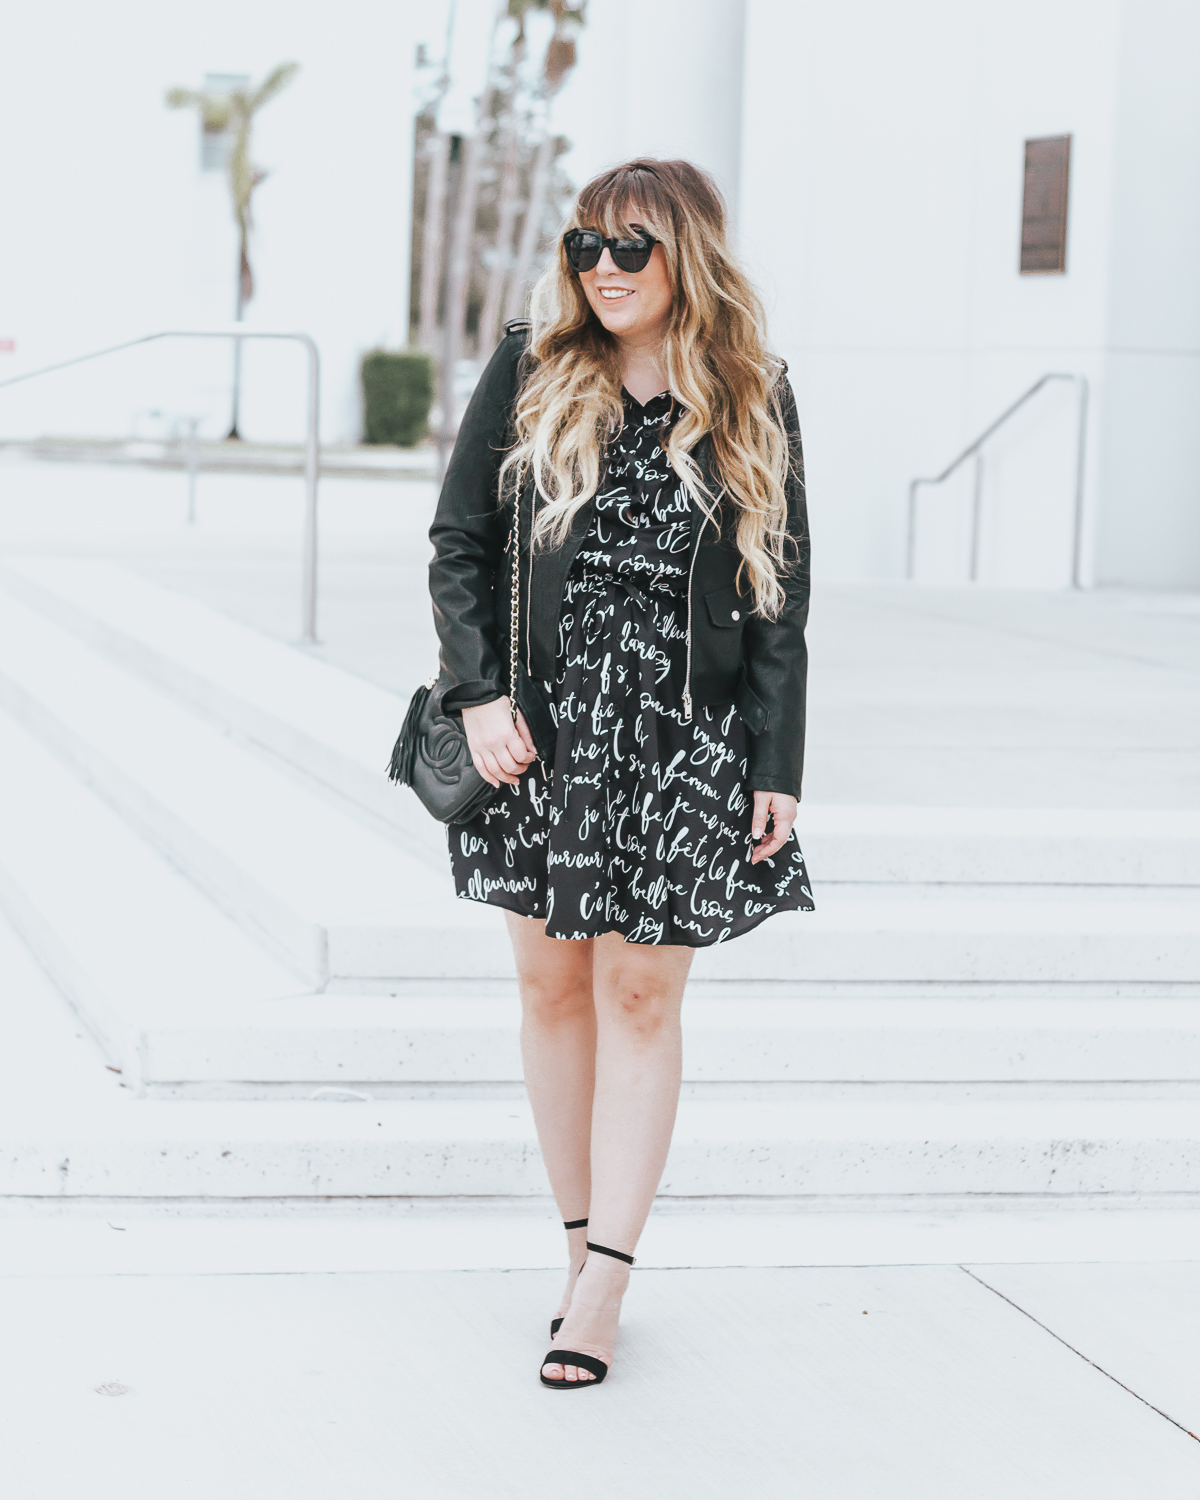 Script shirtdress and leather jacket outfit idea for spring